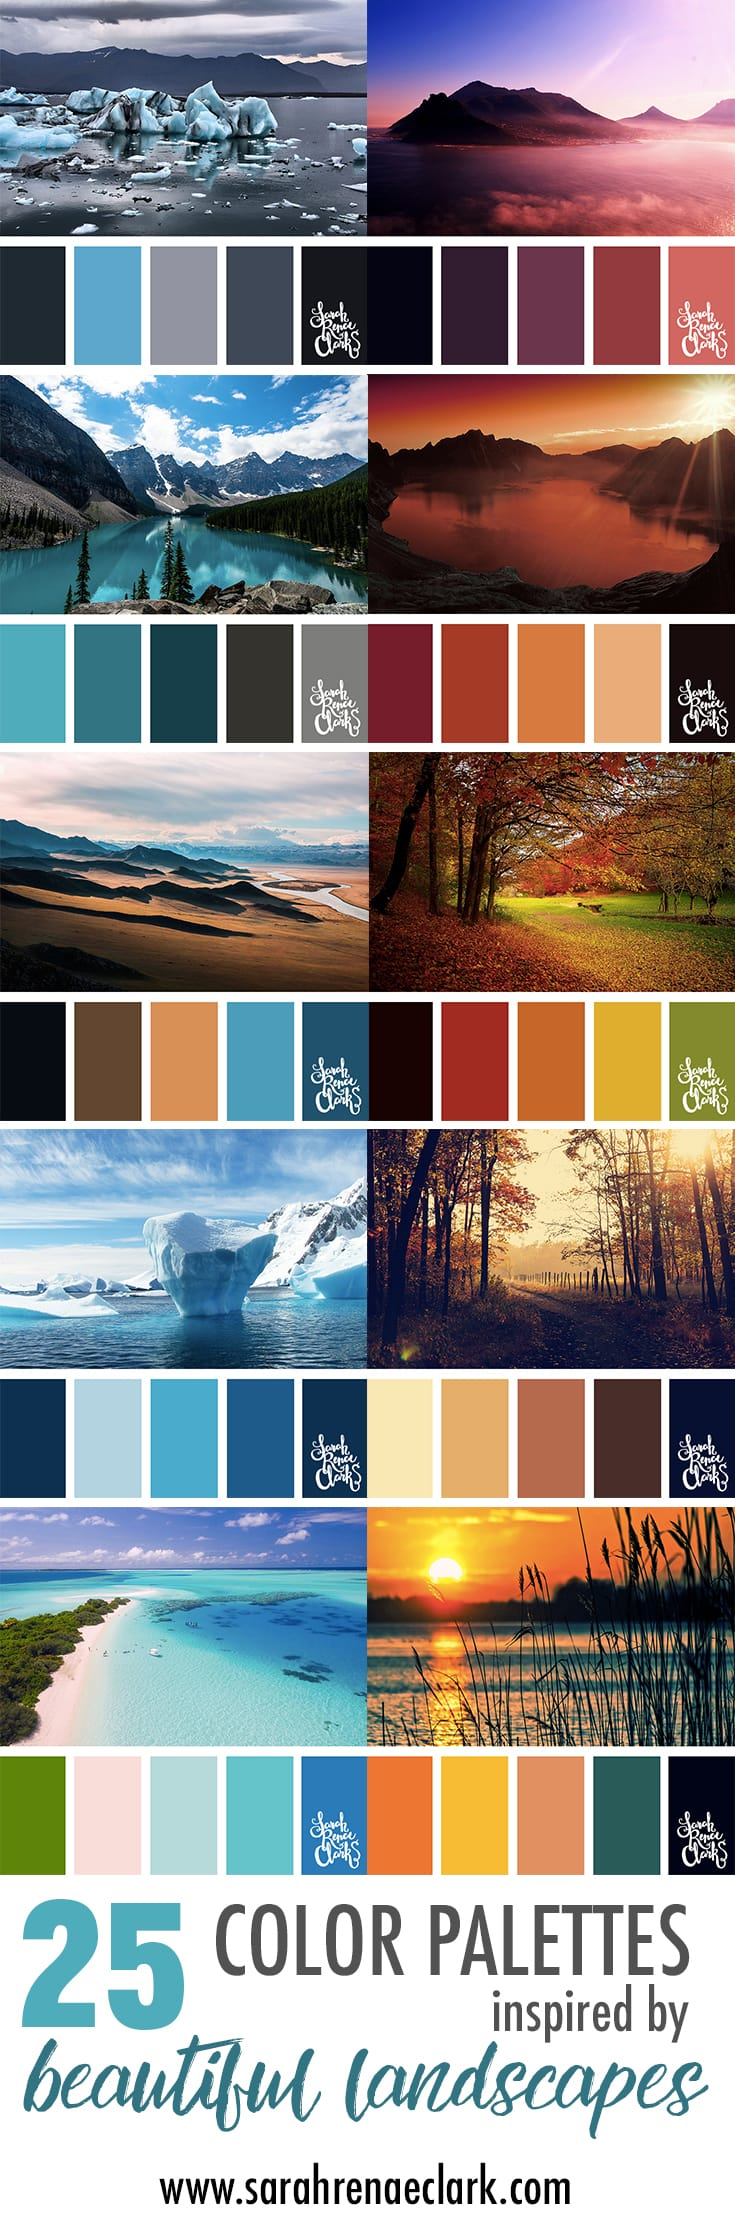 These amazing landscapes are a great source of color inspiration | Click to see all 25 color combinations inspired by beautiful landscapes. You can find more color schemes at https://sarahrenaeclark.com | Colour palettes, colour schemes, color therapy, mood board, color hues and tones